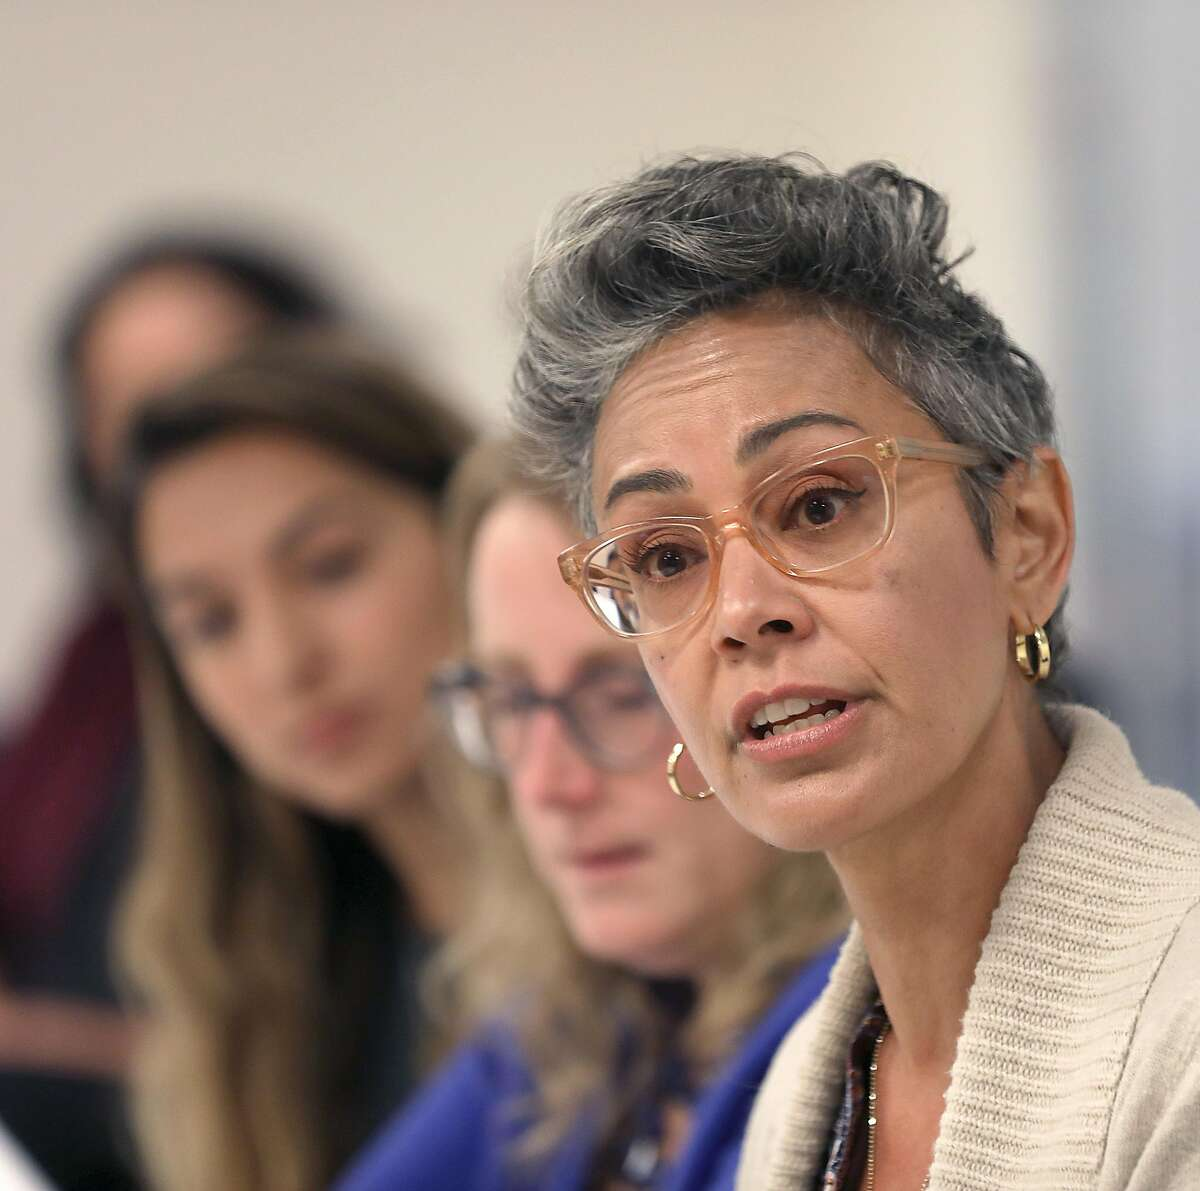 San Francisco school board Vice President Alison Collins has resisted calls to resign in response to racist tweets from 2016.